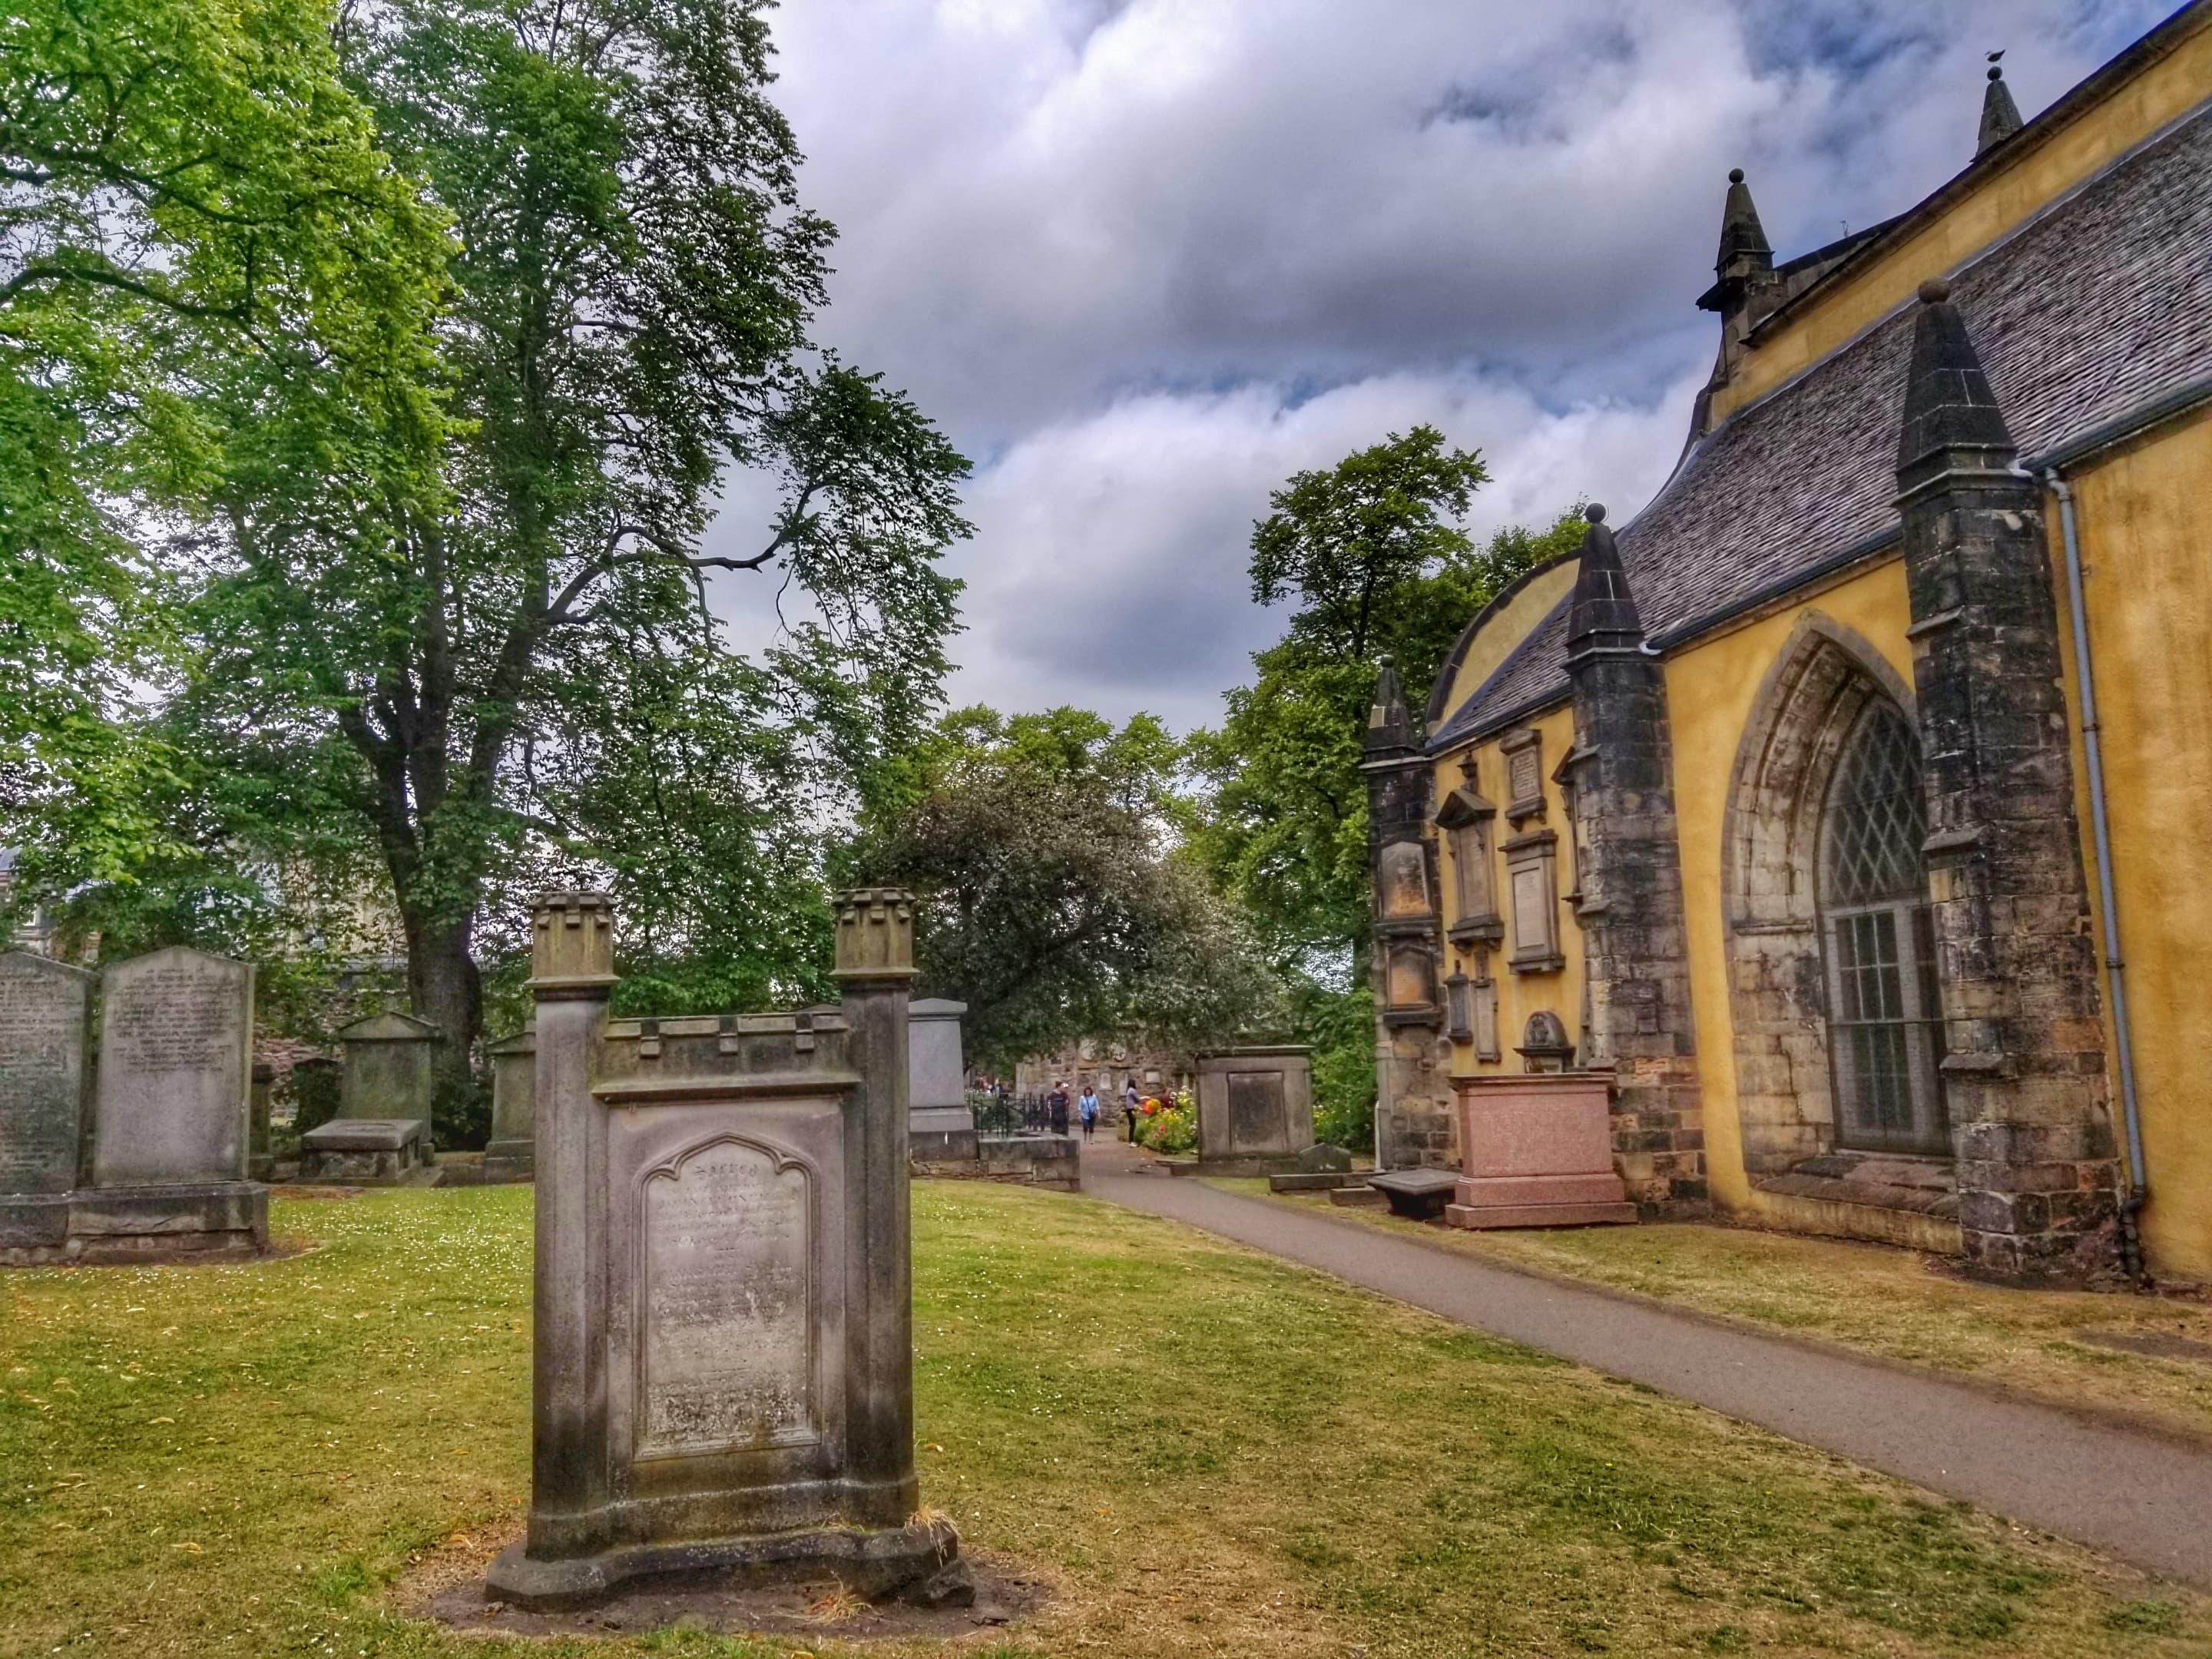 Things to see in Edinburgh Scotland - Greyfriars Kirkyard